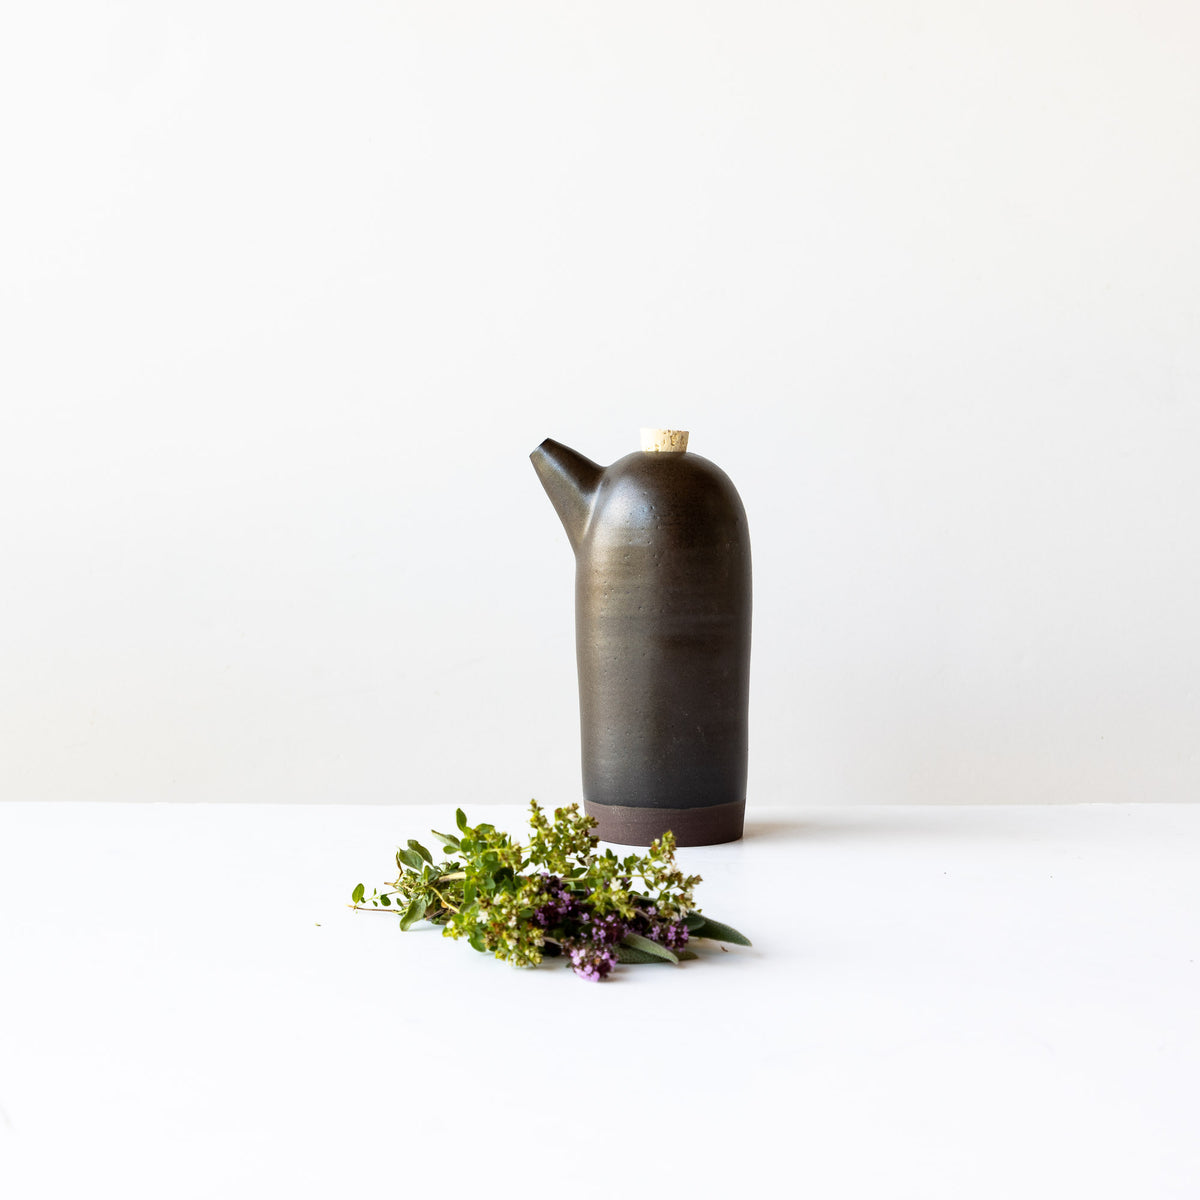 Black Handmade Ceramic Vinegar Bottle - Sold by Chic & Basta